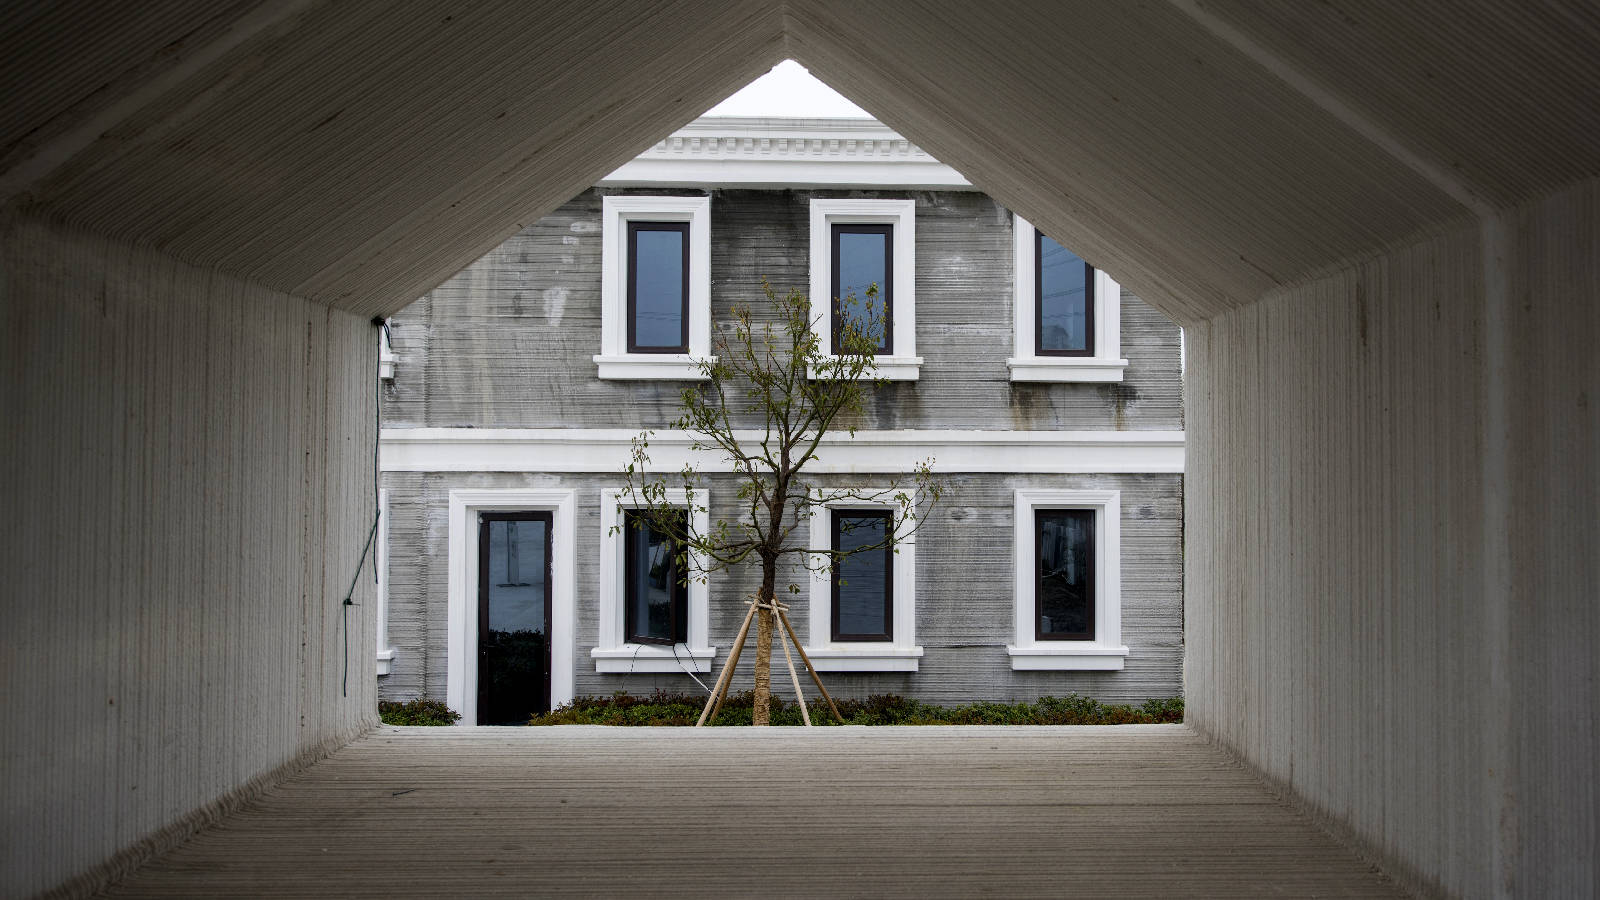 3D Printed House vs Prefabricated Home (PROs and CONs)